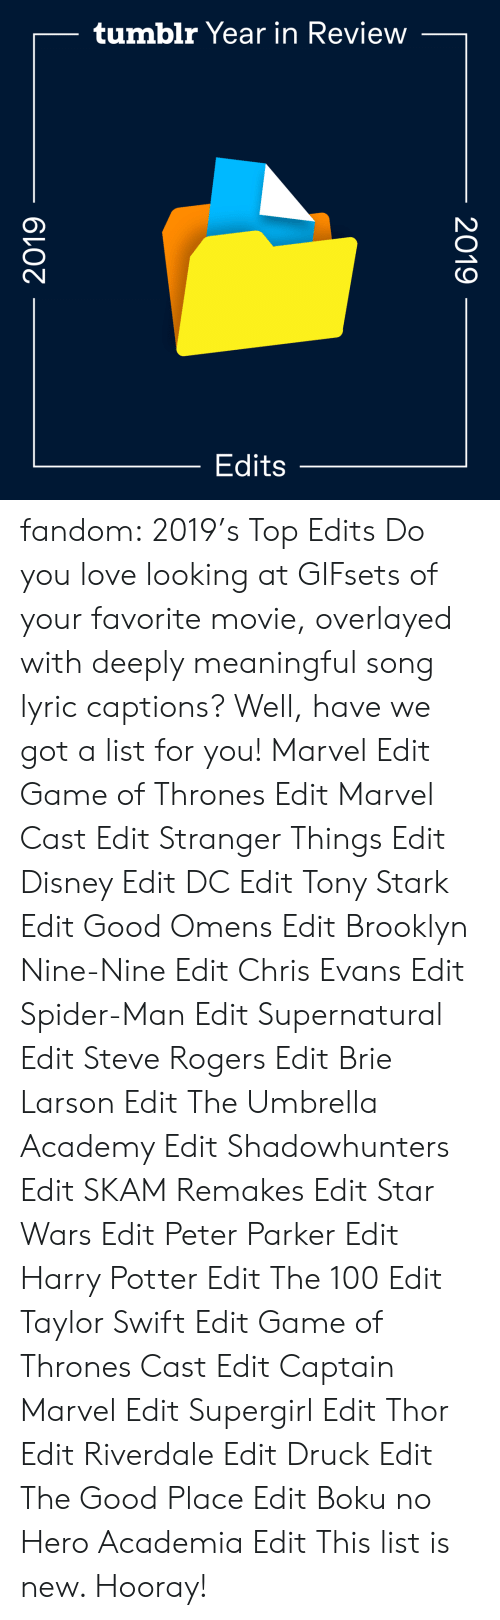 Marvel: tumblr Year in Review  Edits  2019  2019 fandom:  2019's Top Edits  Do you love looking at GIFsets of your favorite movie, overlayed with deeply meaningful song lyric captions? Well, have we got a list for you!  Marvel Edit  Game of Thrones Edit  Marvel Cast Edit  Stranger Things Edit  Disney Edit  DC Edit  Tony Stark Edit  Good Omens Edit  Brooklyn Nine-Nine Edit  Chris Evans Edit  Spider-Man Edit  Supernatural Edit  Steve Rogers Edit  Brie Larson Edit  The Umbrella Academy Edit  Shadowhunters Edit  SKAM Remakes Edit  Star Wars Edit  Peter Parker Edit  Harry Potter Edit  The 100 Edit  Taylor Swift Edit  Game of Thrones Cast Edit  Captain Marvel Edit  Supergirl Edit  Thor Edit  Riverdale Edit  Druck Edit  The Good Place Edit  Boku no Hero Academia Edit This list is new. Hooray!